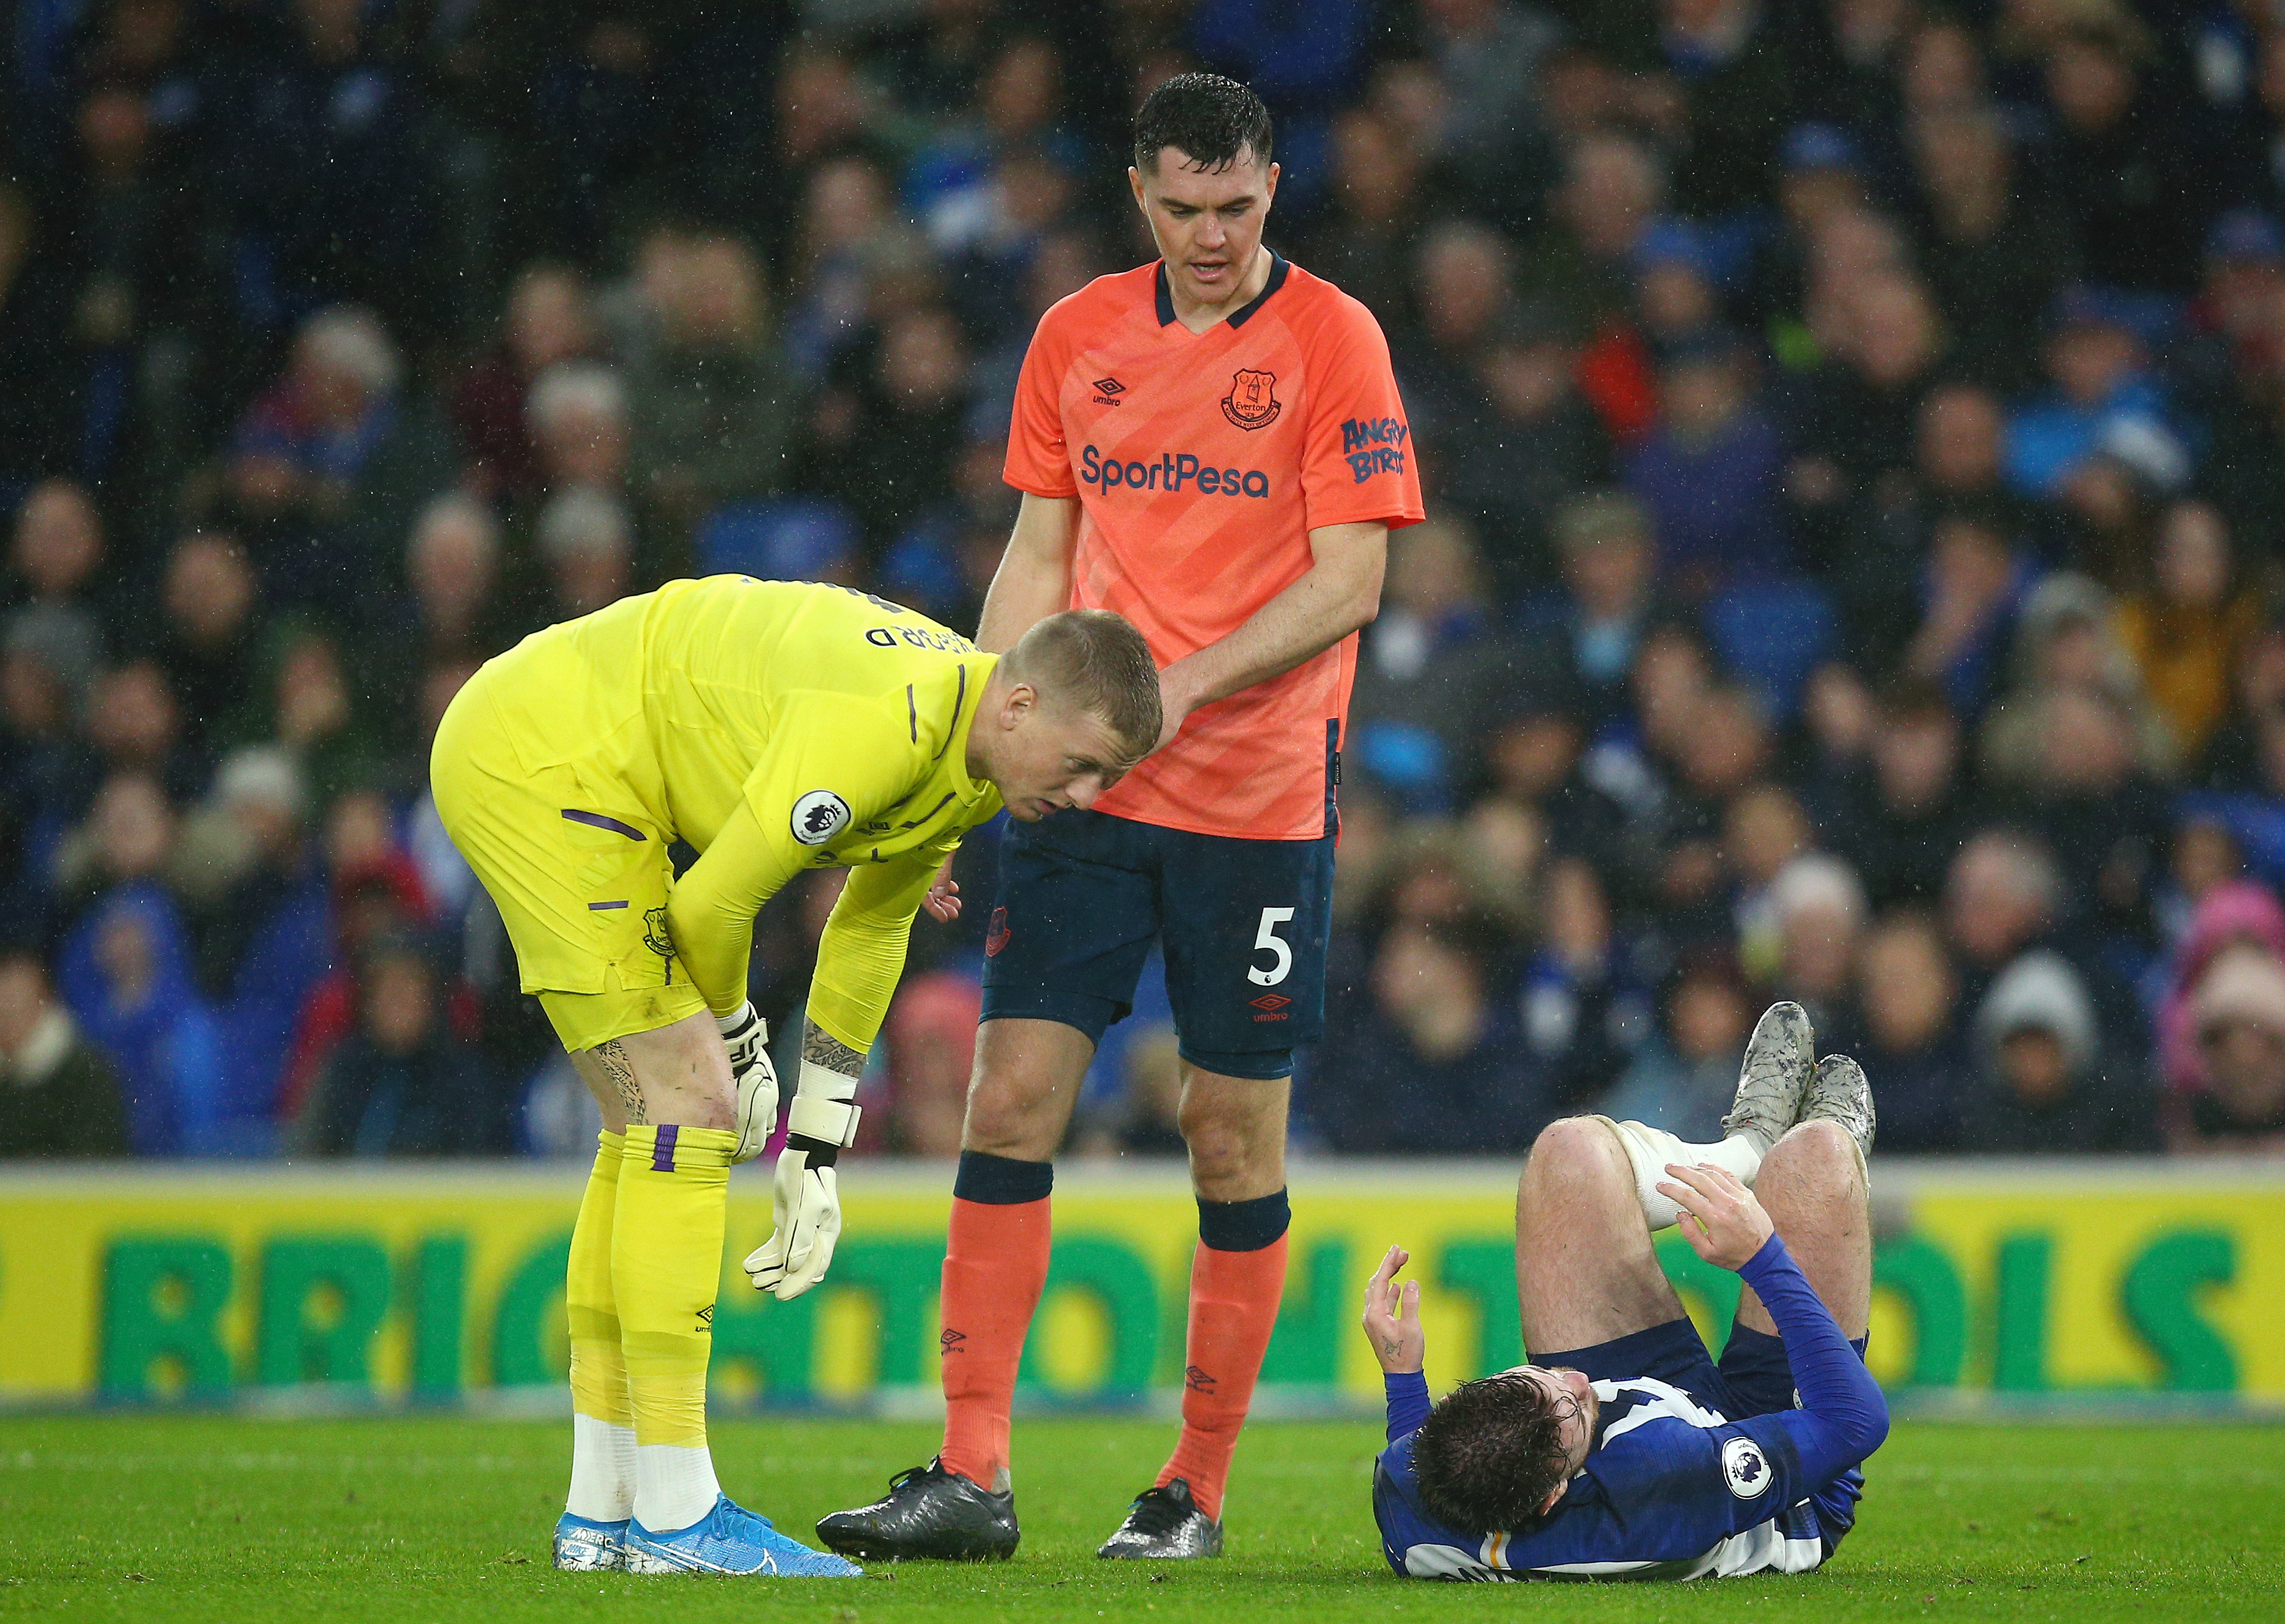 Counting Down the Most Impactful 'Everton-That' Moments from the season so far: Pt 1